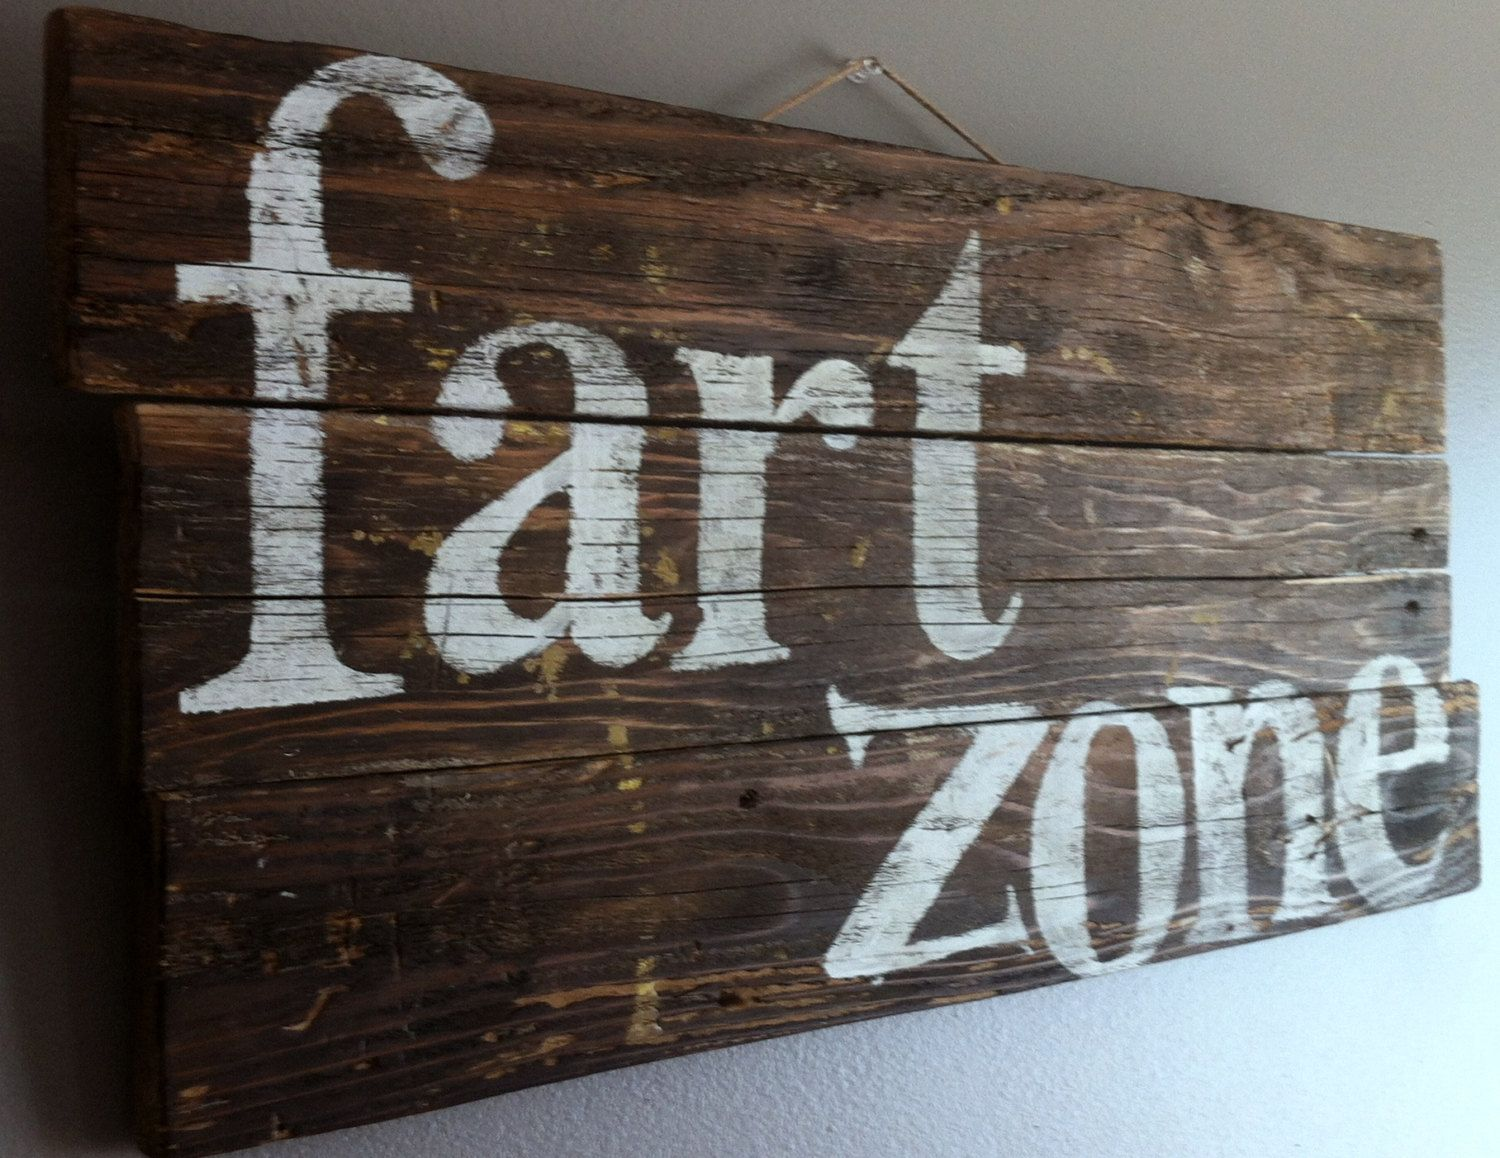 Funny humorous quote fart zone reclaimed cedar wood by emcsquared